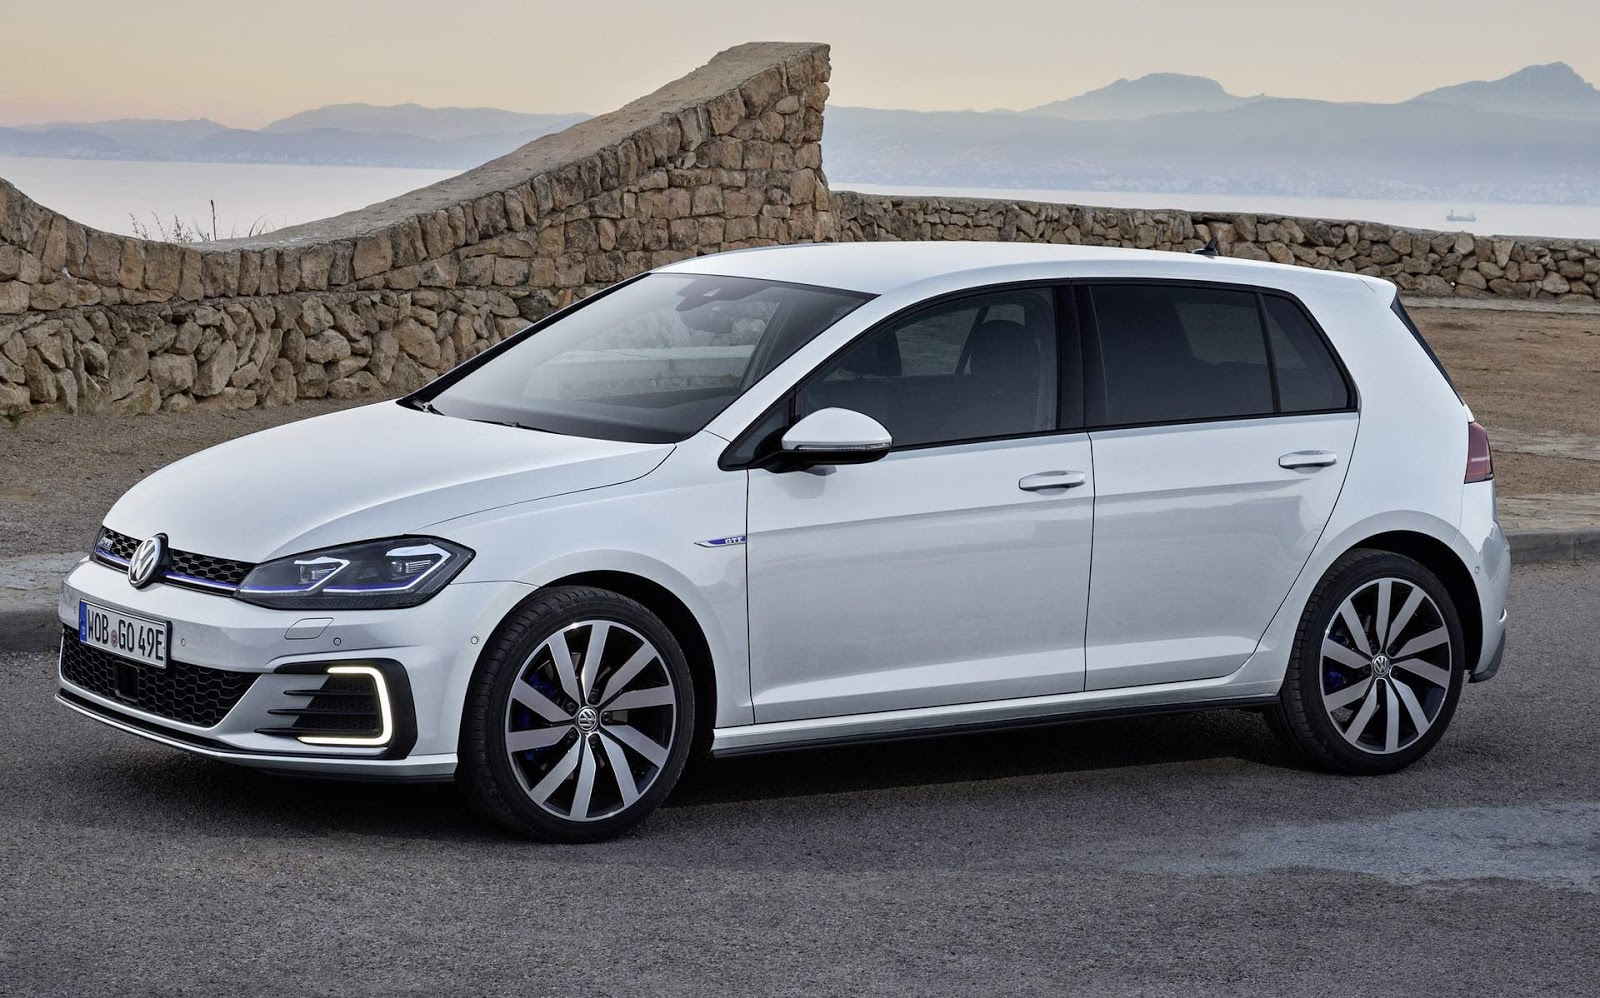 volkswagen golf gte 2018 fotos e especifica es oficiais car blog br. Black Bedroom Furniture Sets. Home Design Ideas